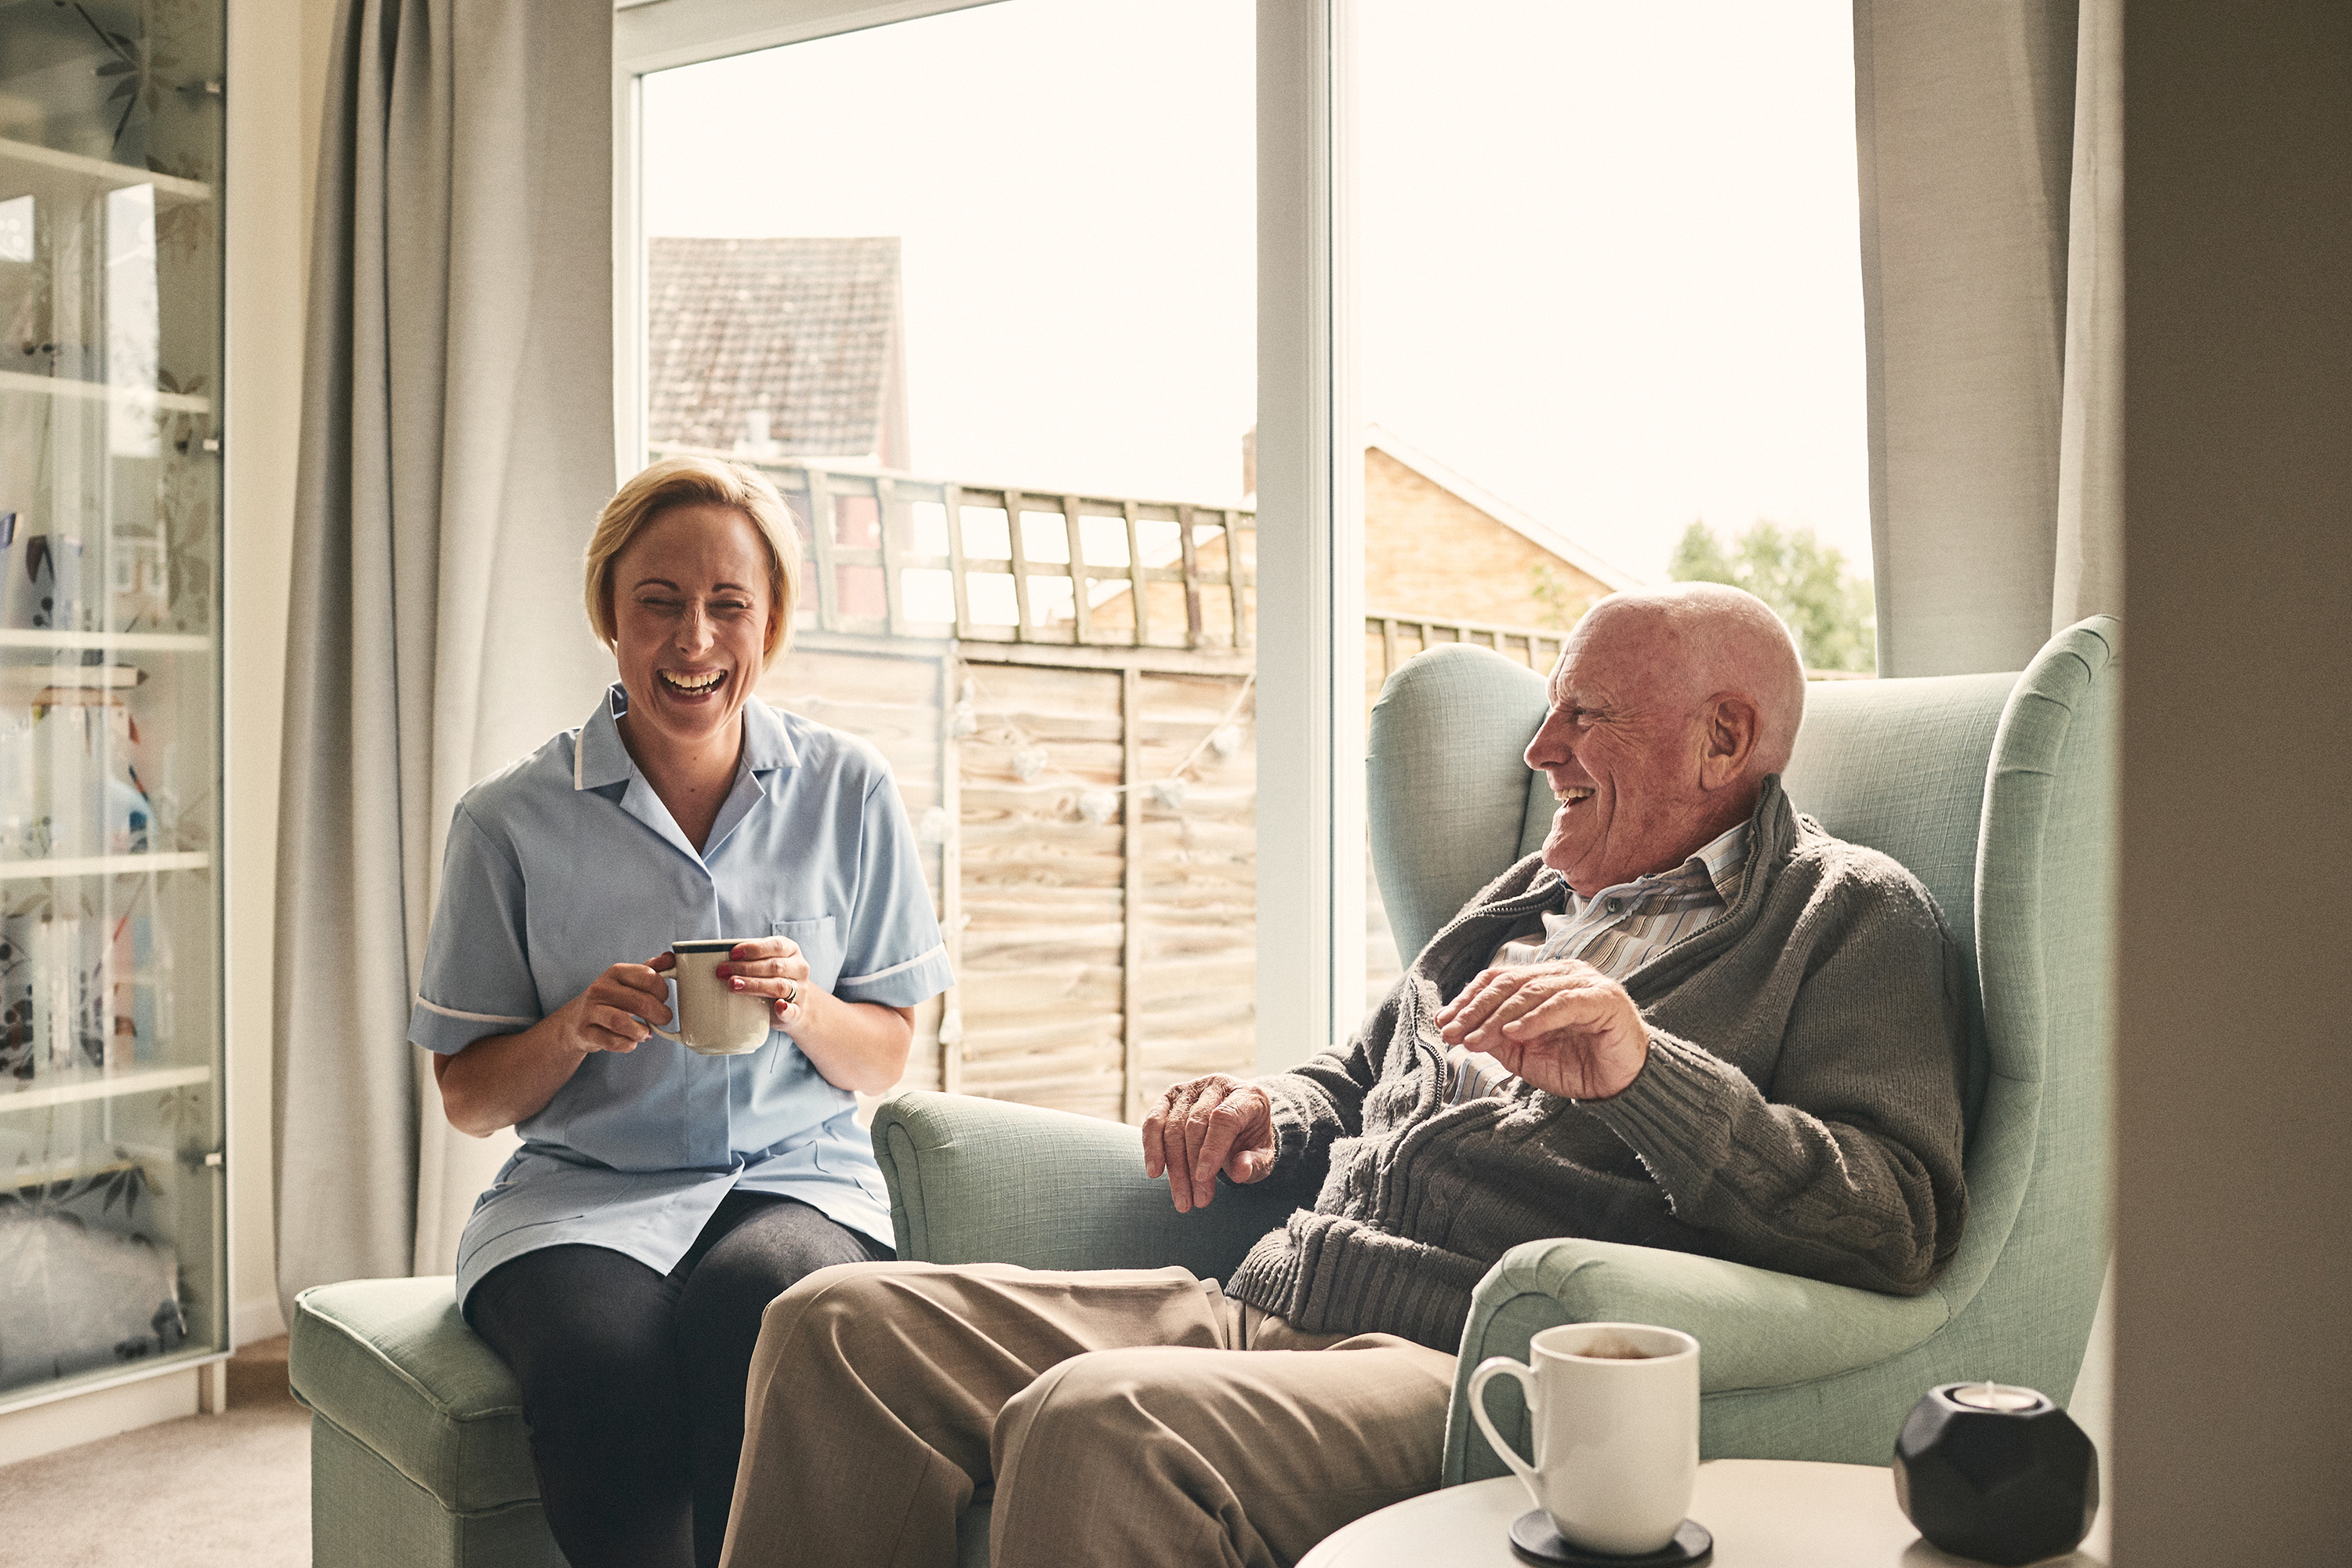 Community groups working with elderly could get cash boost